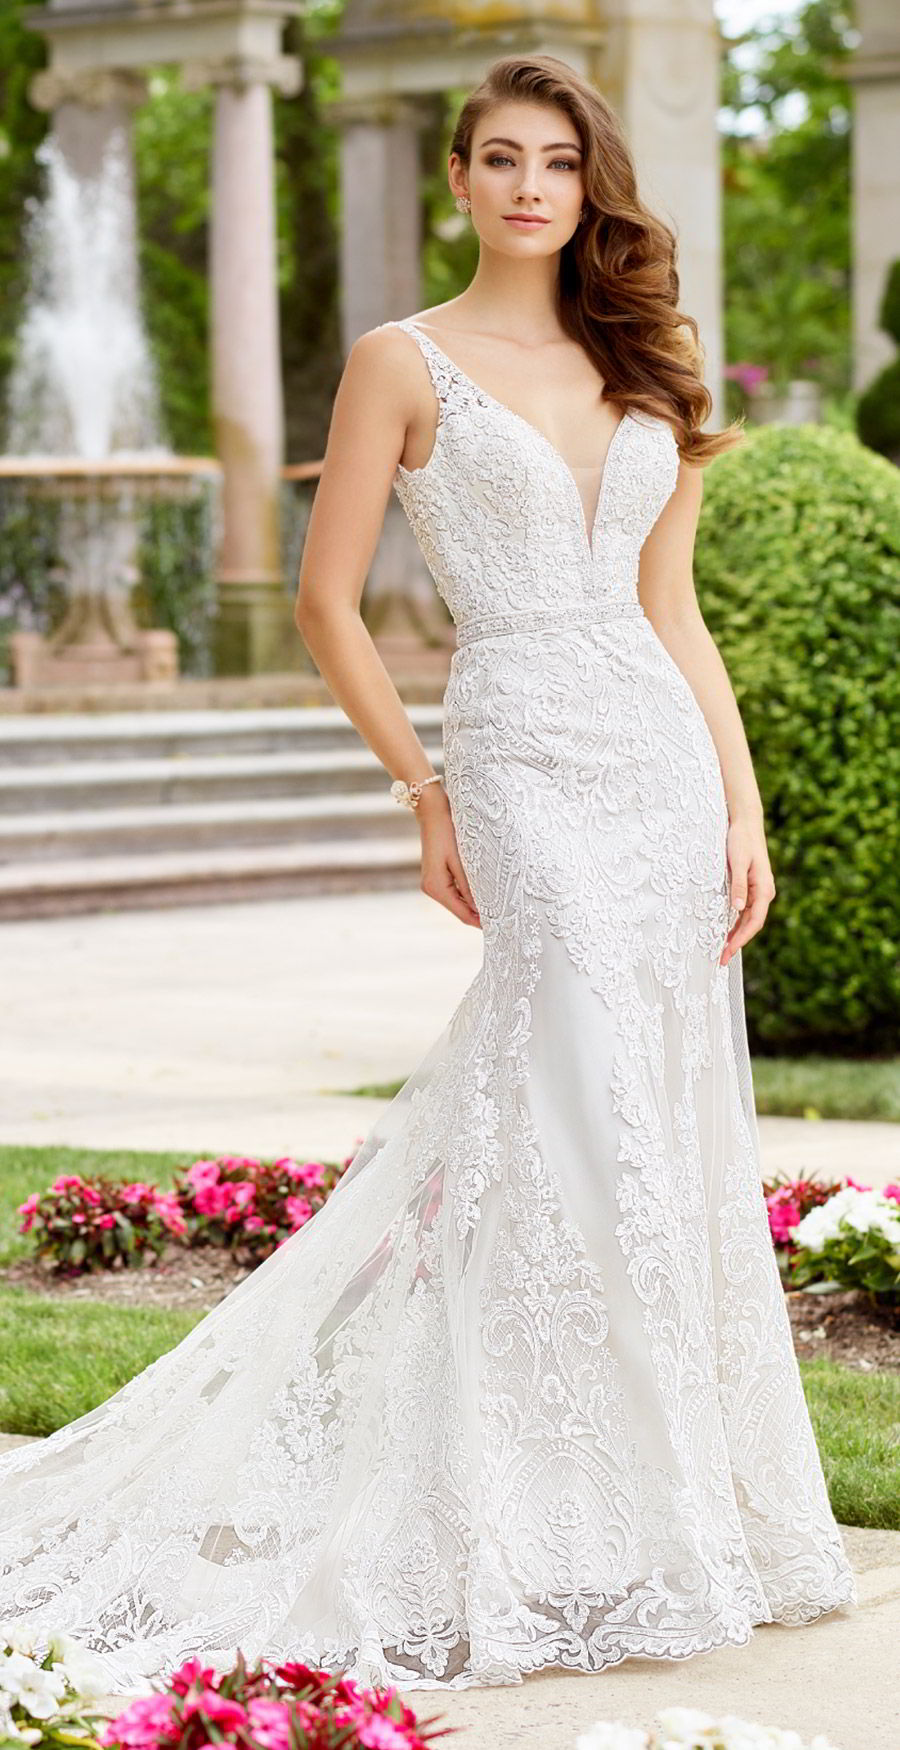 martin thornburg mon cheri spring 2018 bridal sleeveless beaded straps plunging v neck heavily embellished trumpet lace wedding dress (arietta 118274) mv chapel train elegant